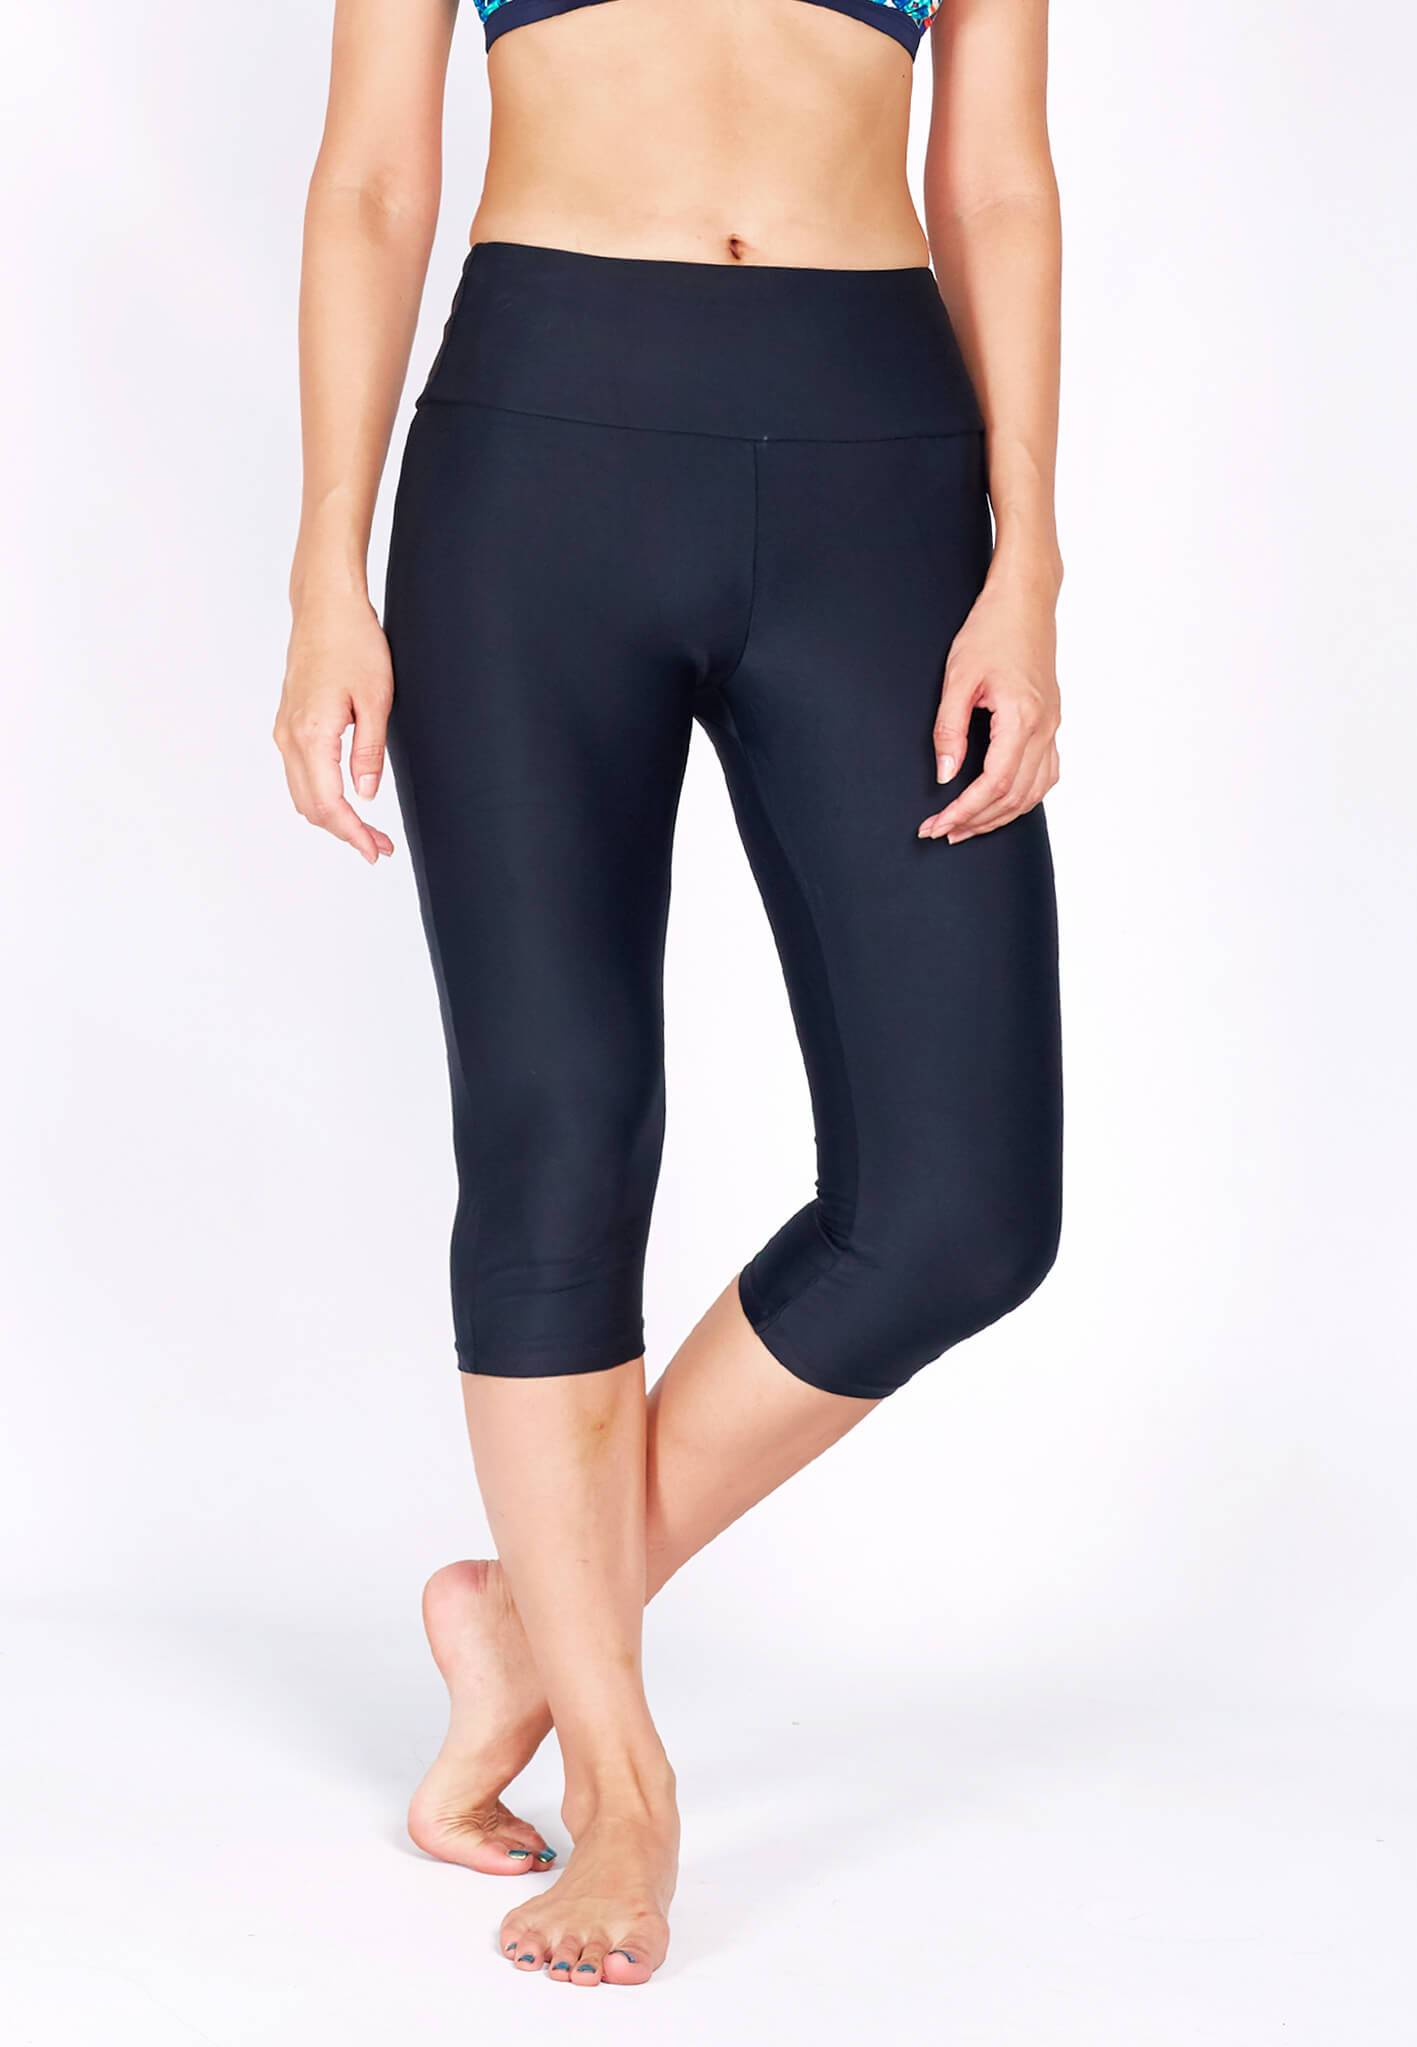 UPF50+ Capri Pants (with KeeperBand®) in Black (S - 3XL) - FUNFIT